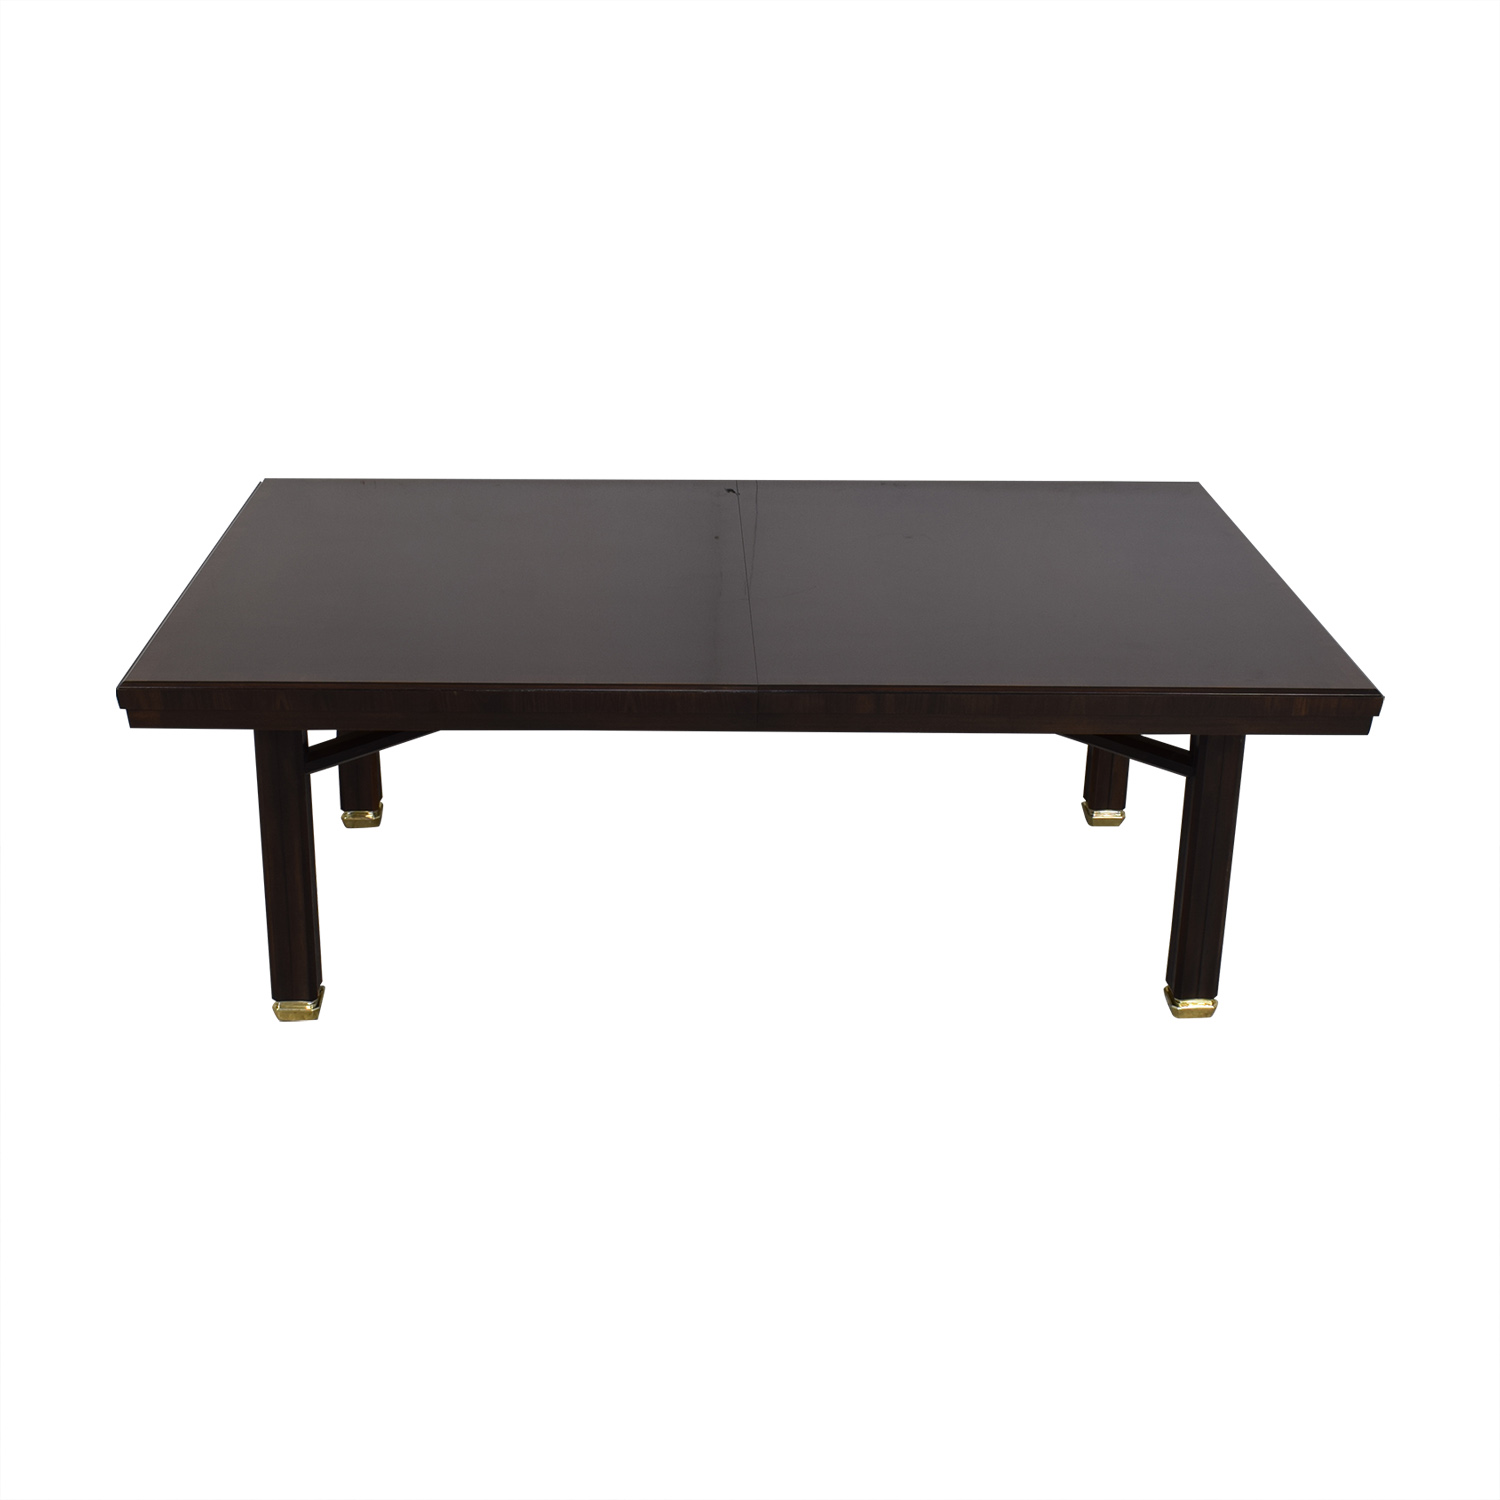 Century Furniture Monceau Dining Table / Tables